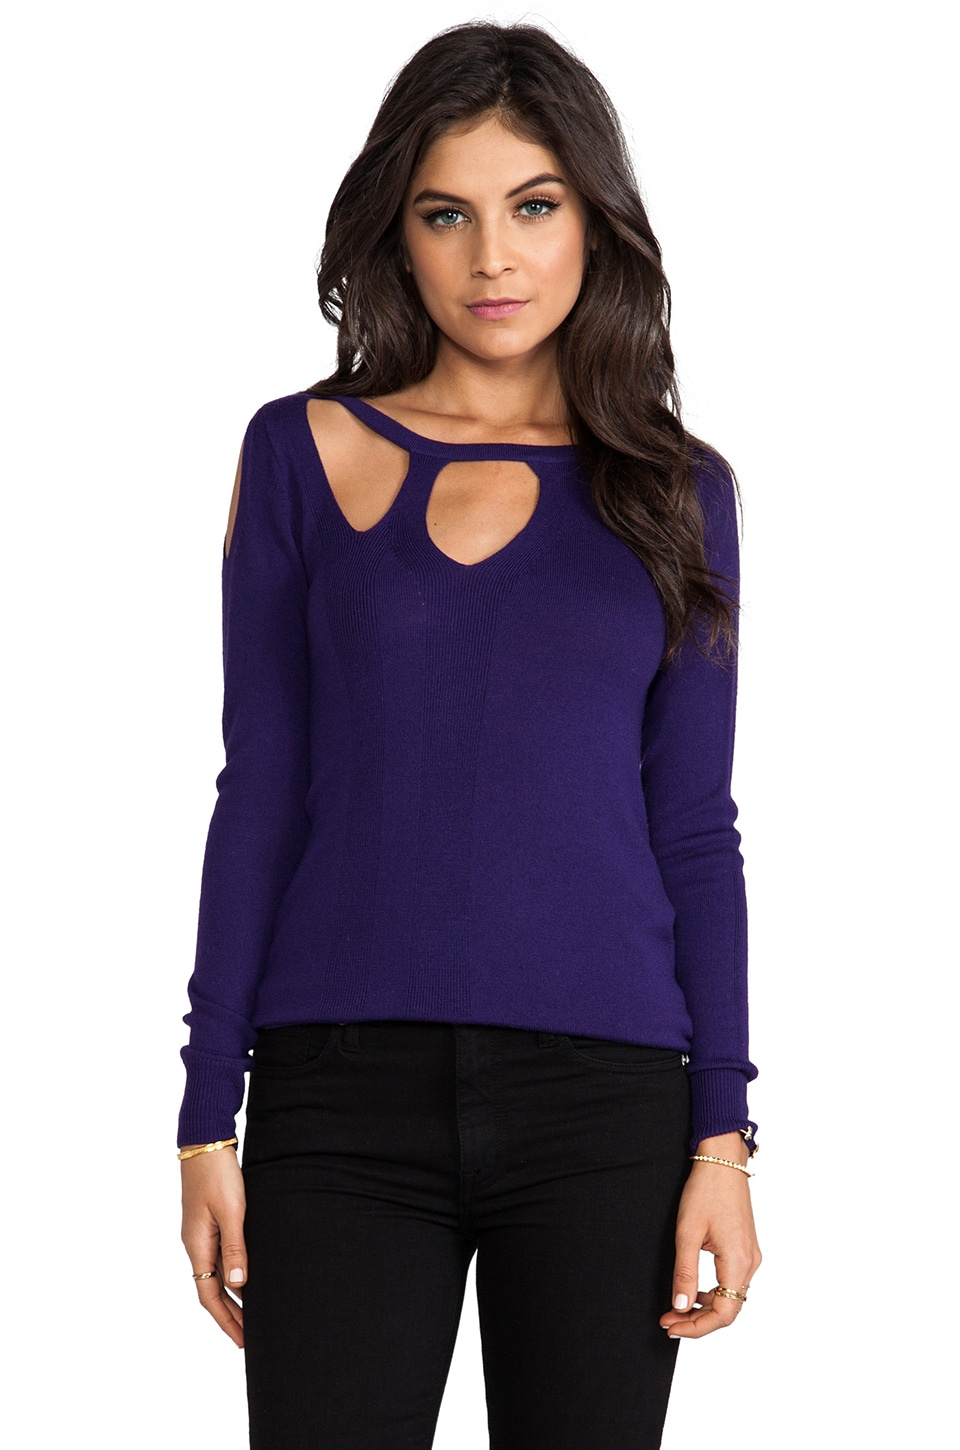 Nanette Lepore Futuristic Knit Wrap Speed Sweater in Violet